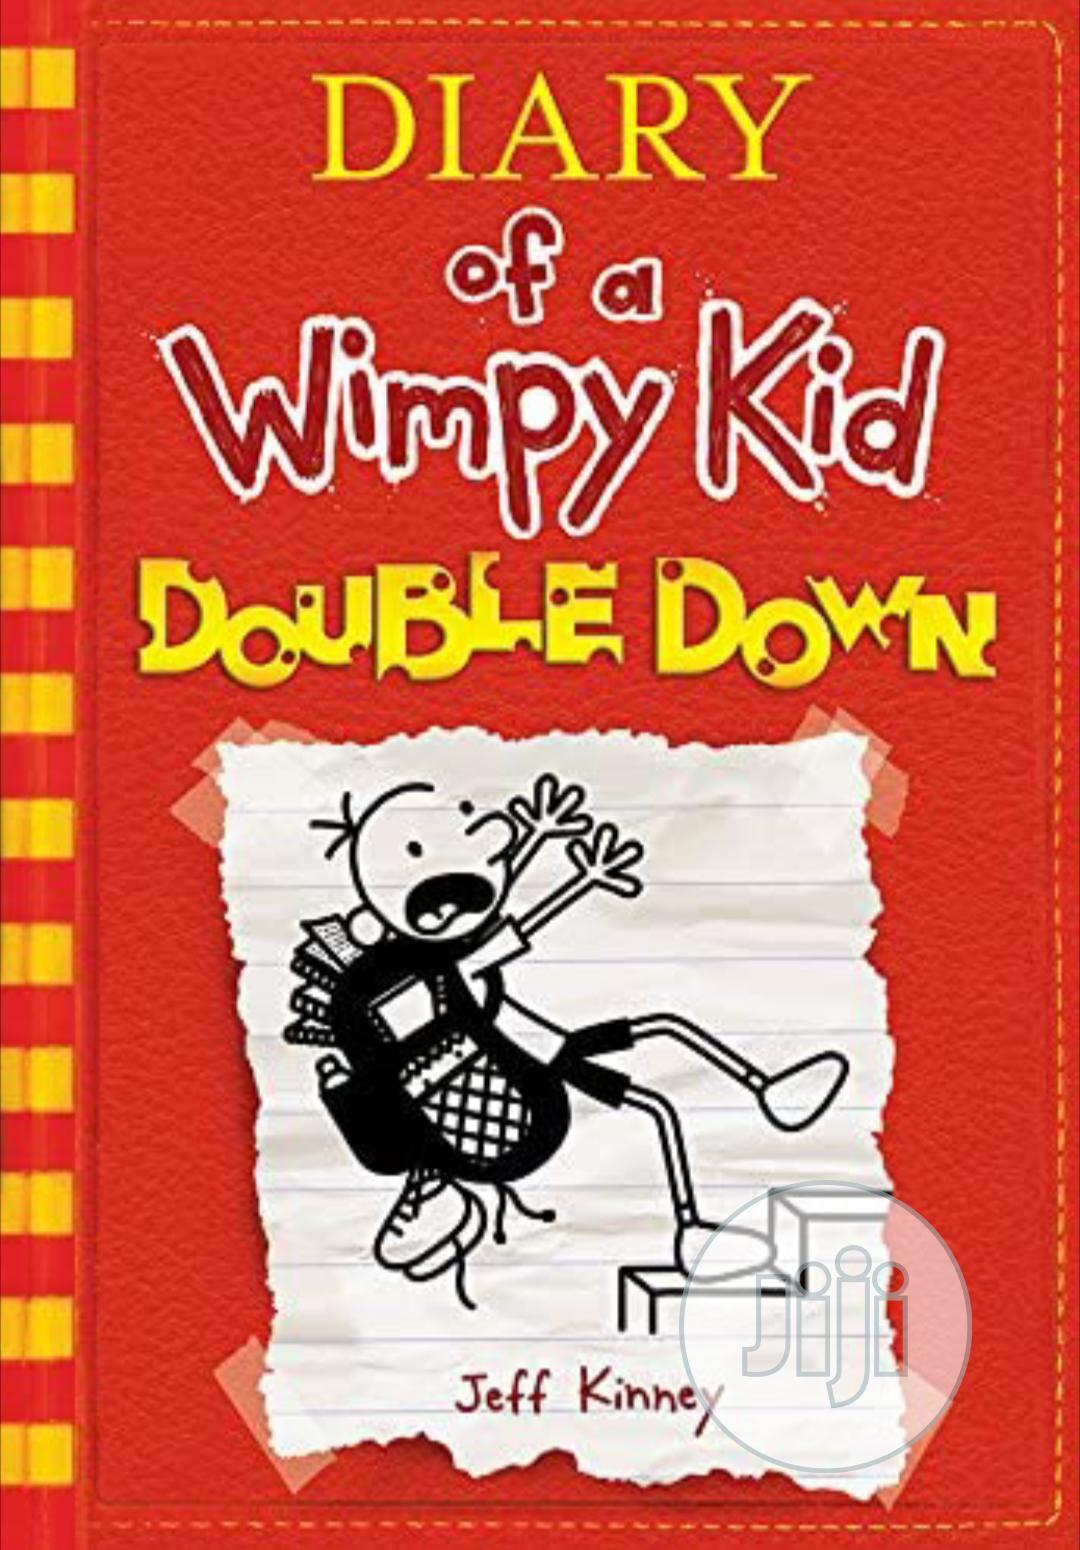 Archive: Diary of a Wimpy Kid Book 11: Double Down by Jeff Kinney